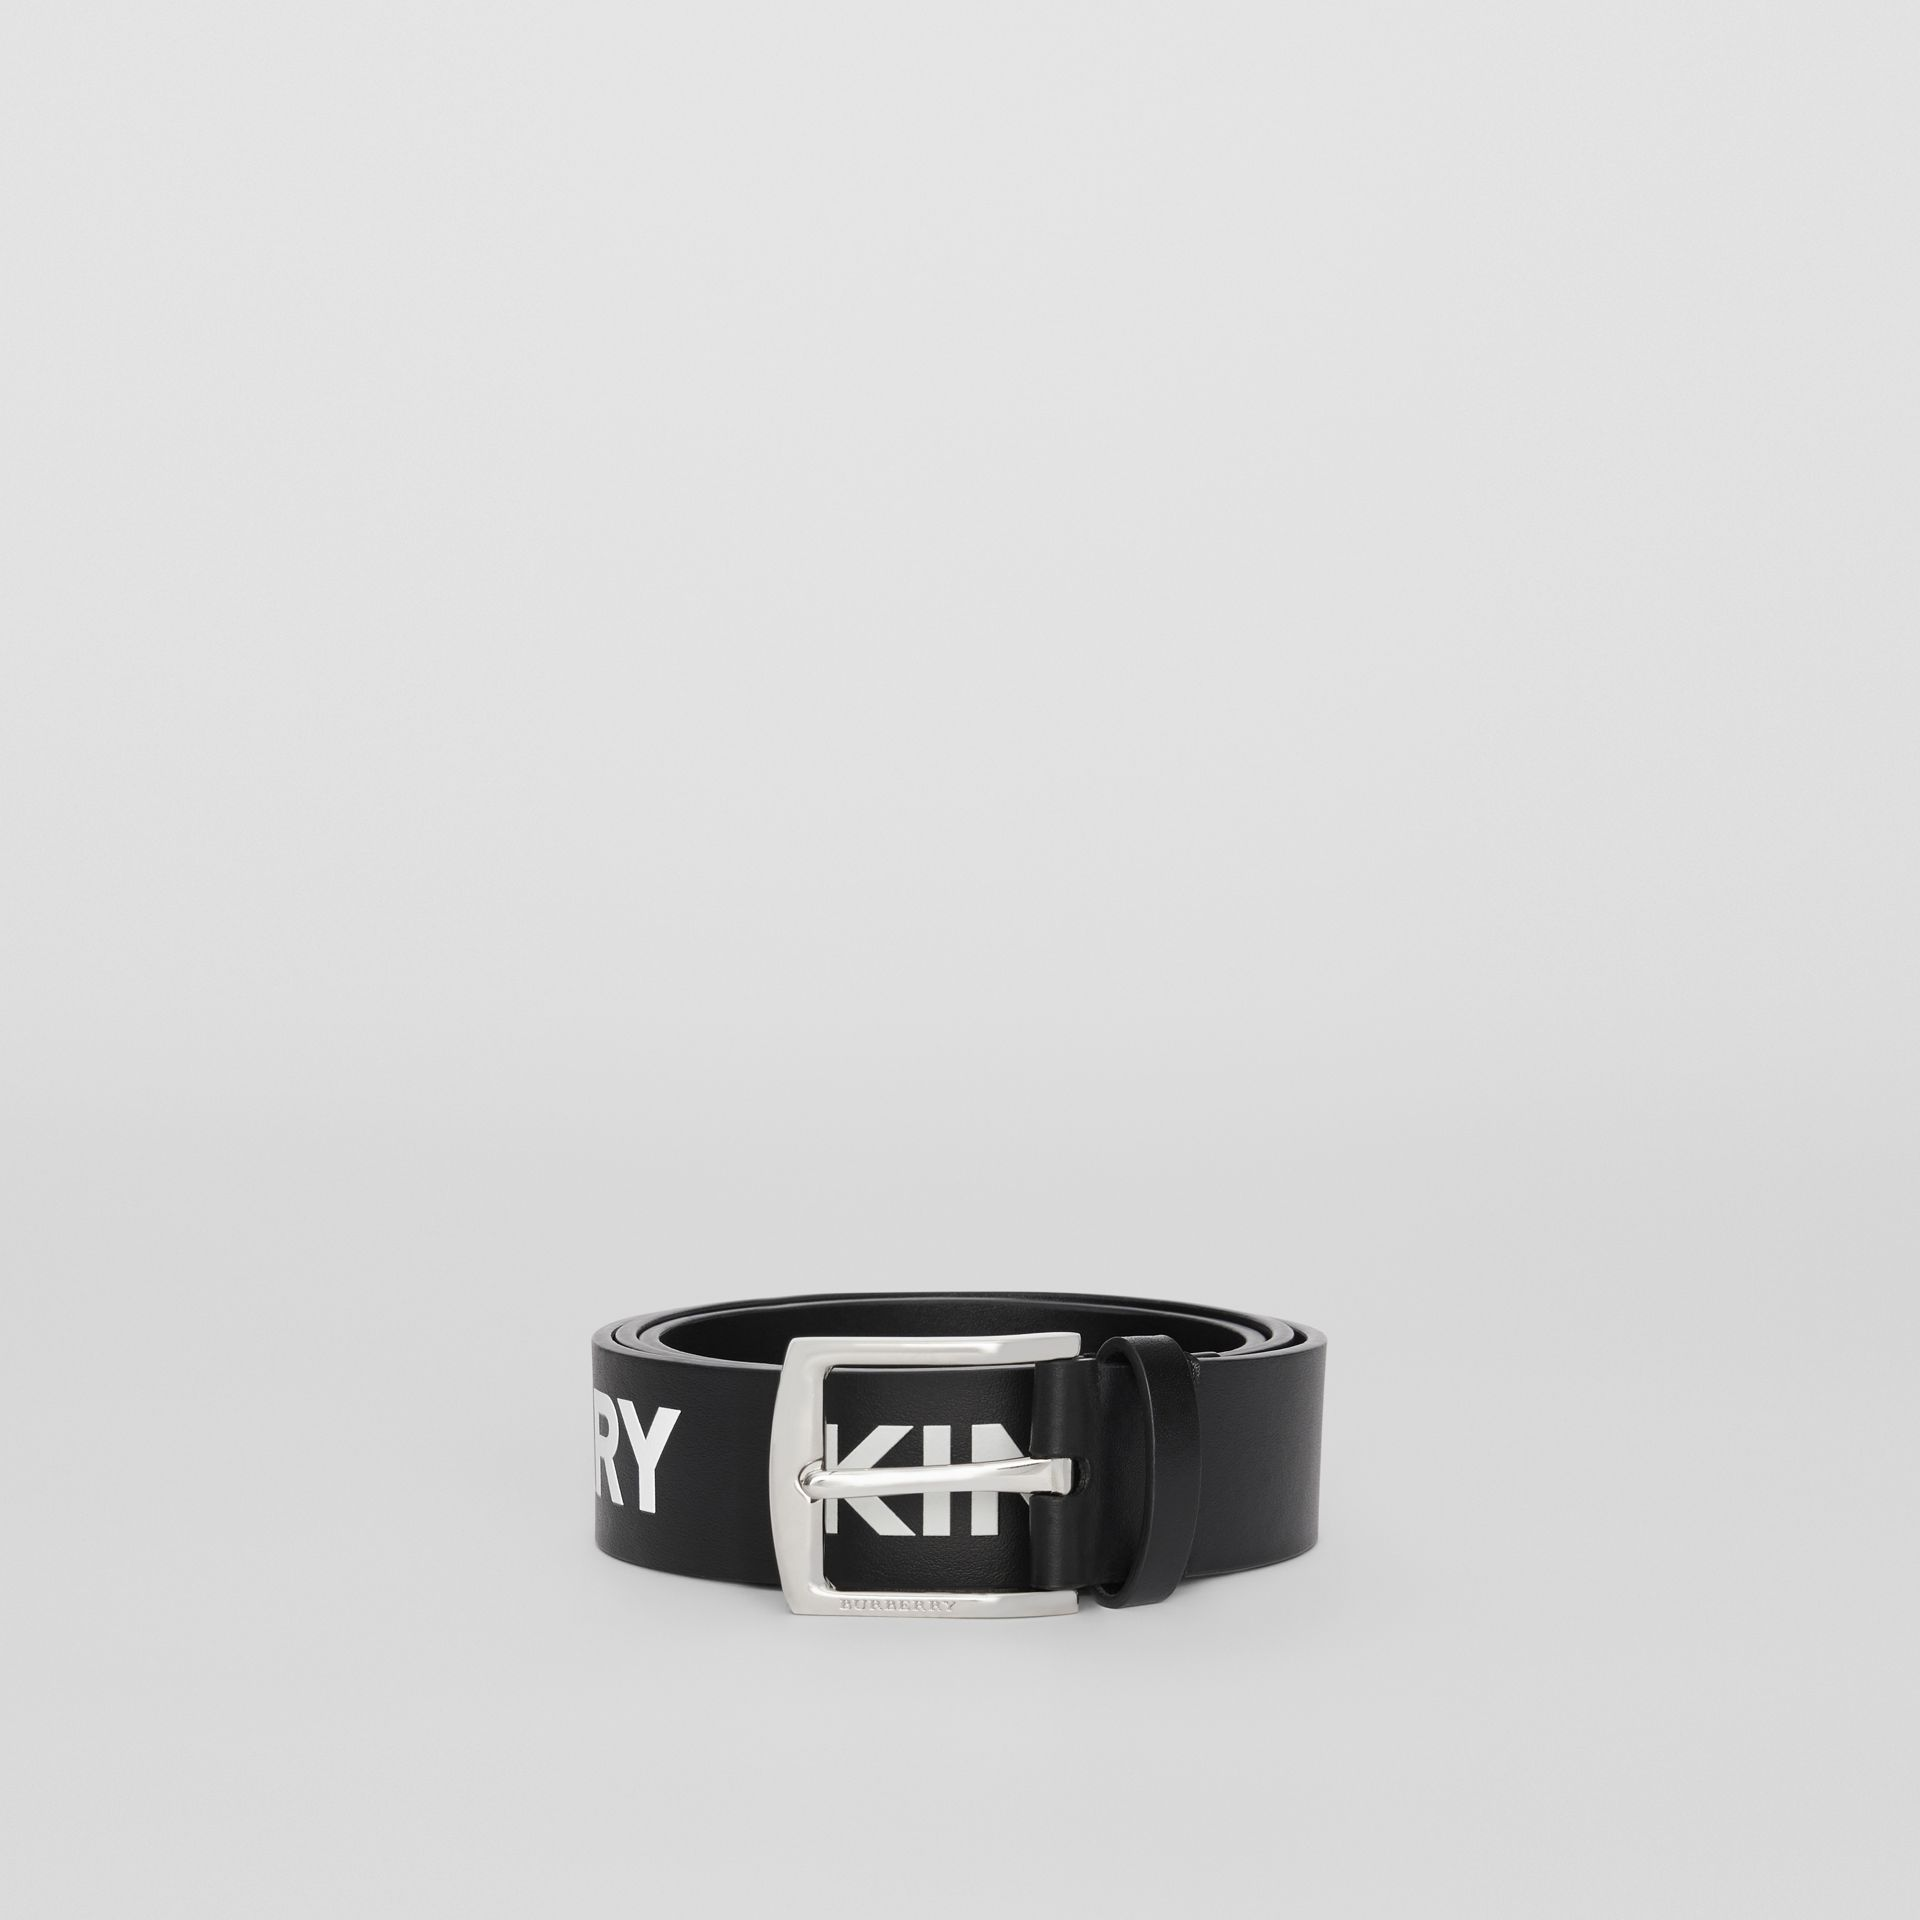 Kingdom Print Leather Belt in Black - Men | Burberry Hong Kong - gallery image 2